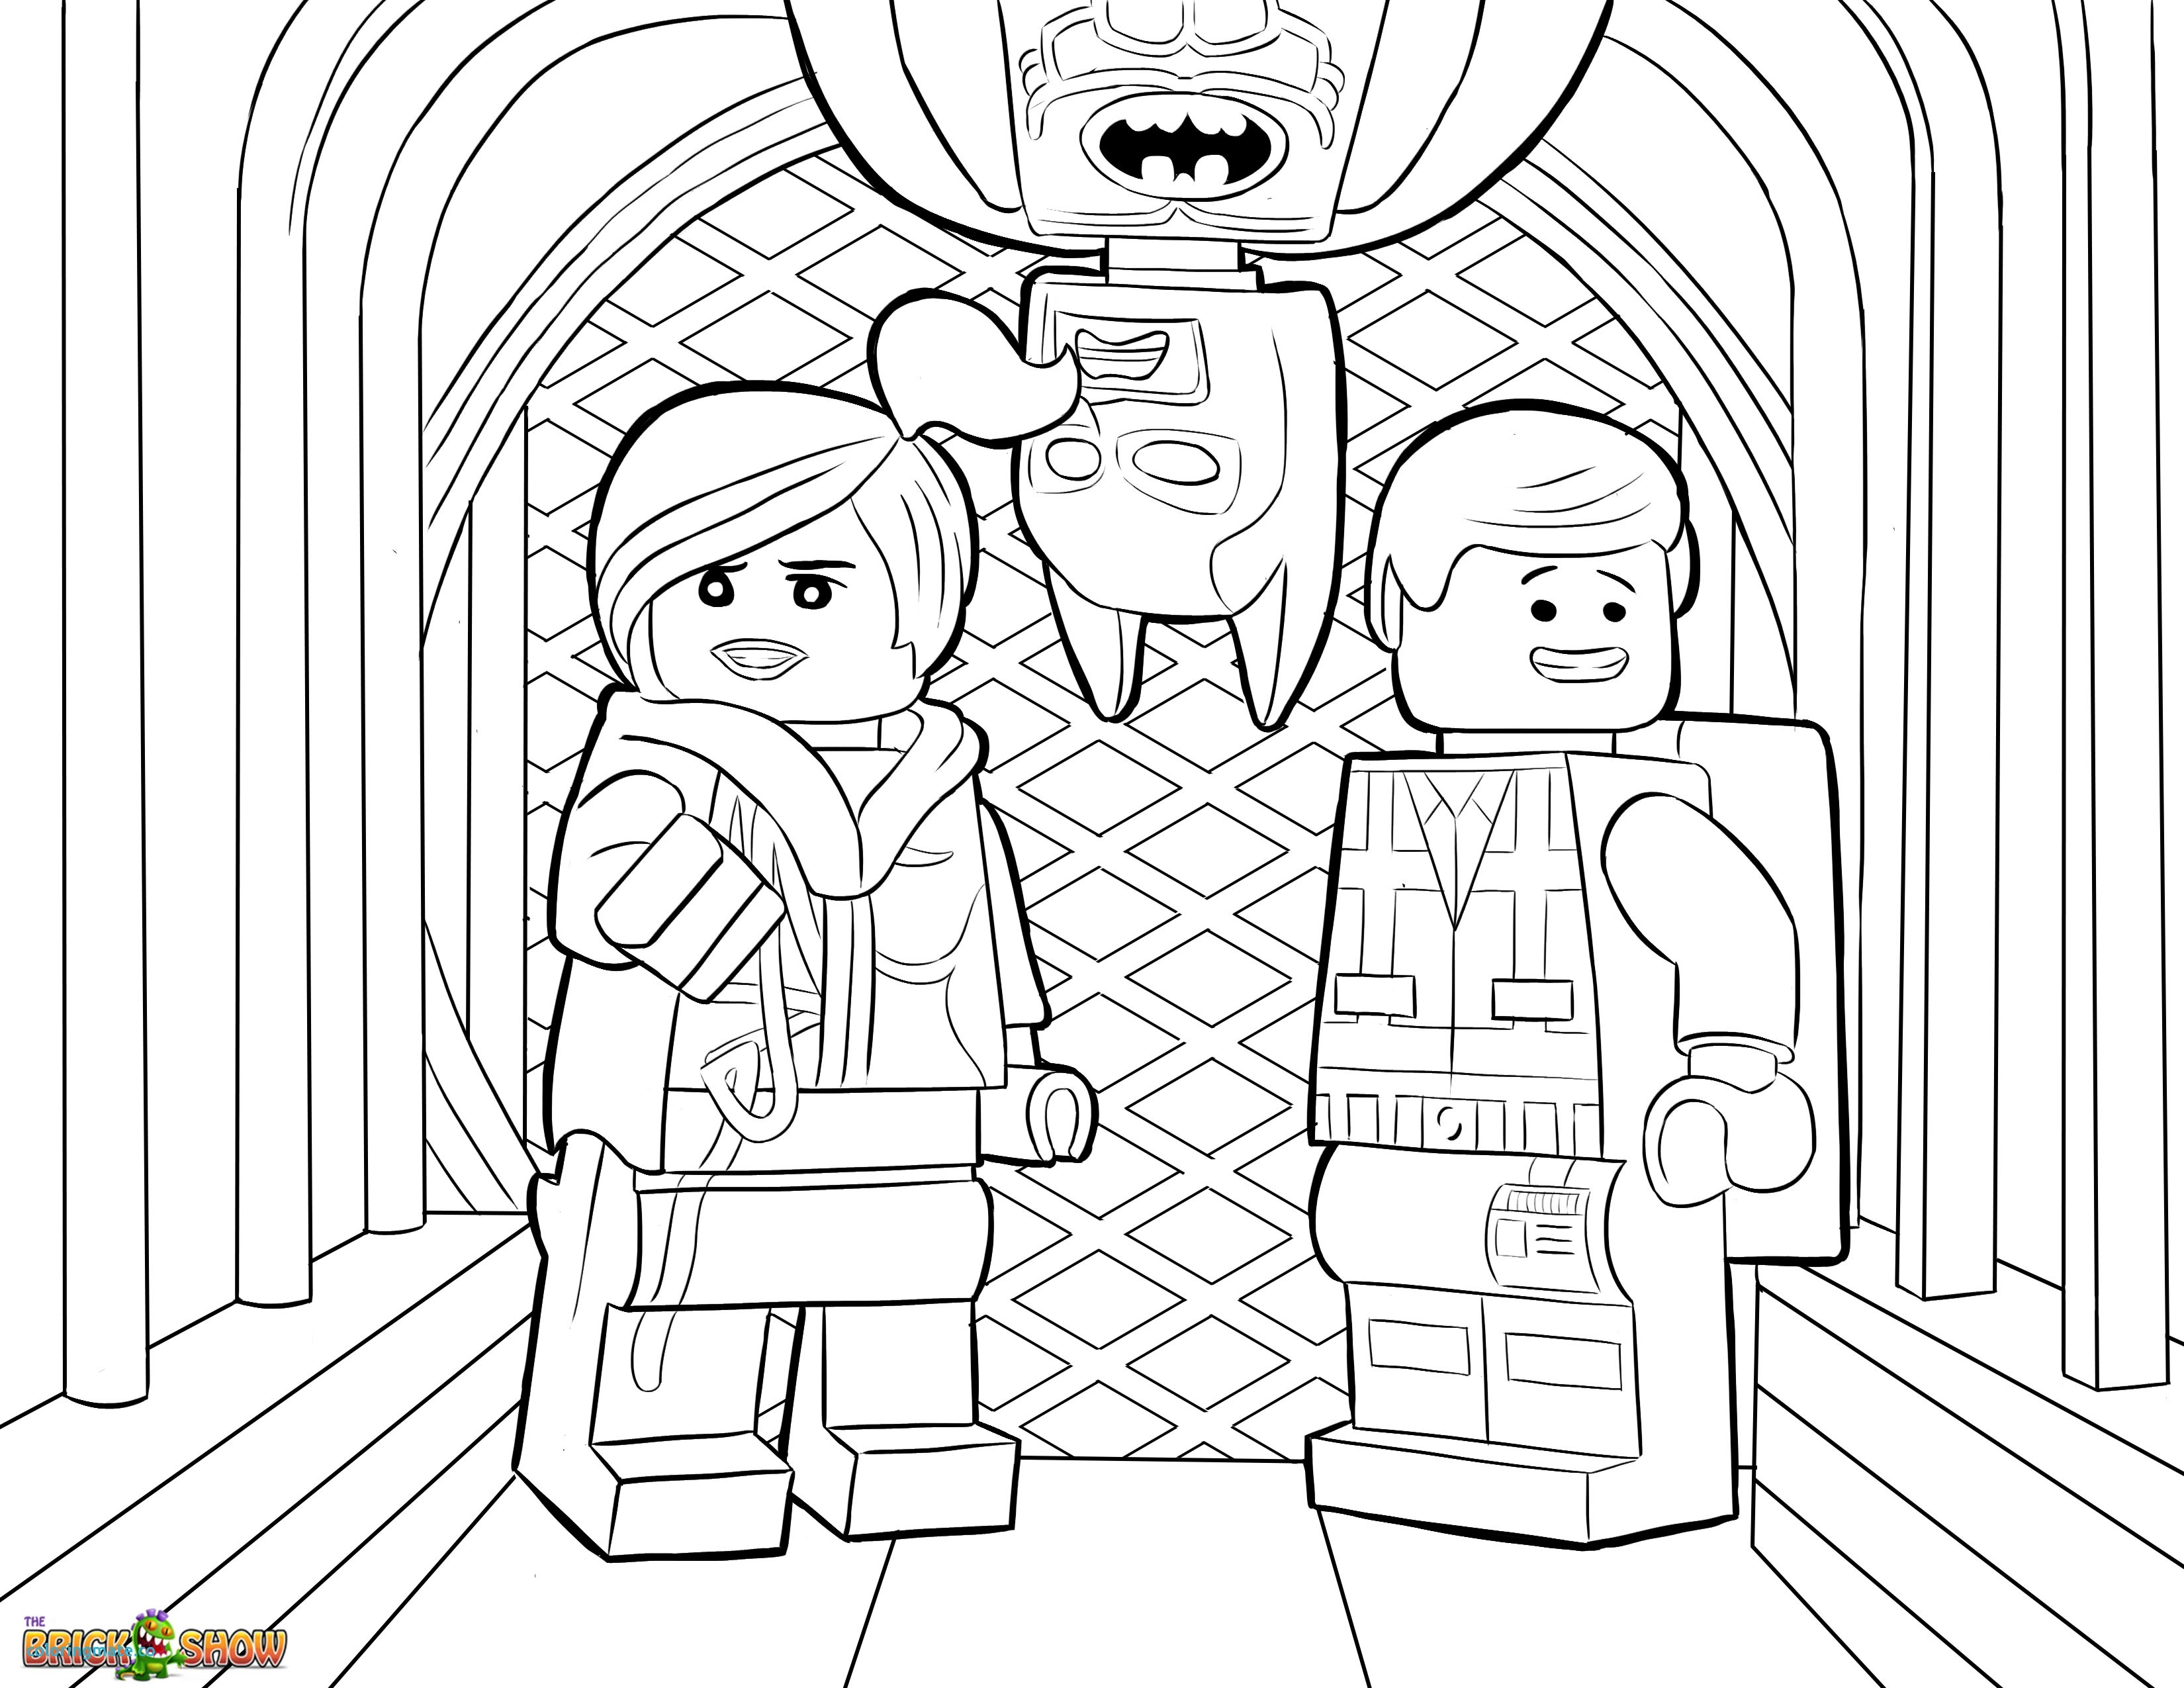 lego coloring pages to print free the lego batman movie coloring pages lego coloring to print free pages